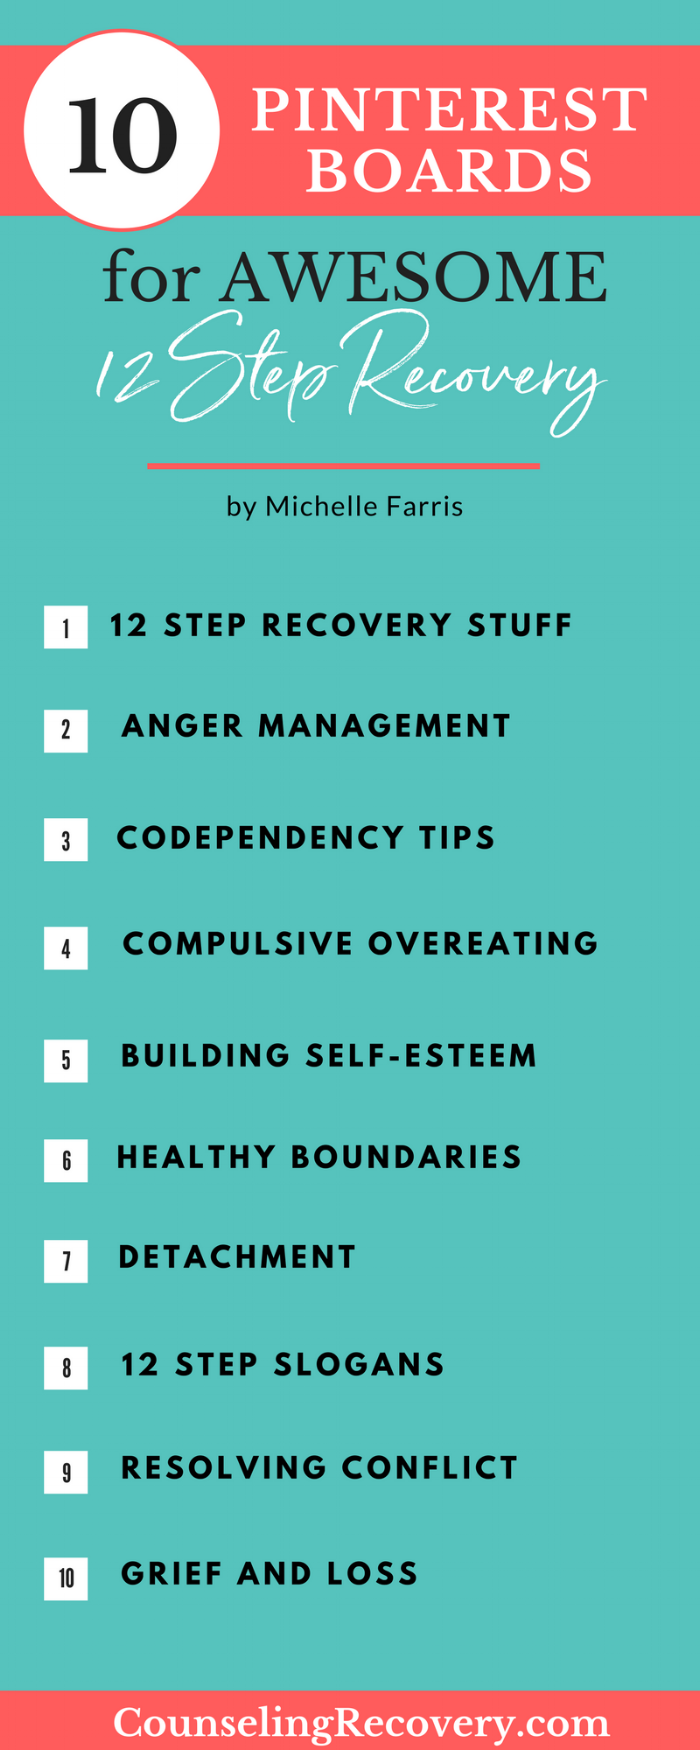 12 Step Recovery Pinterest Boards San Jose